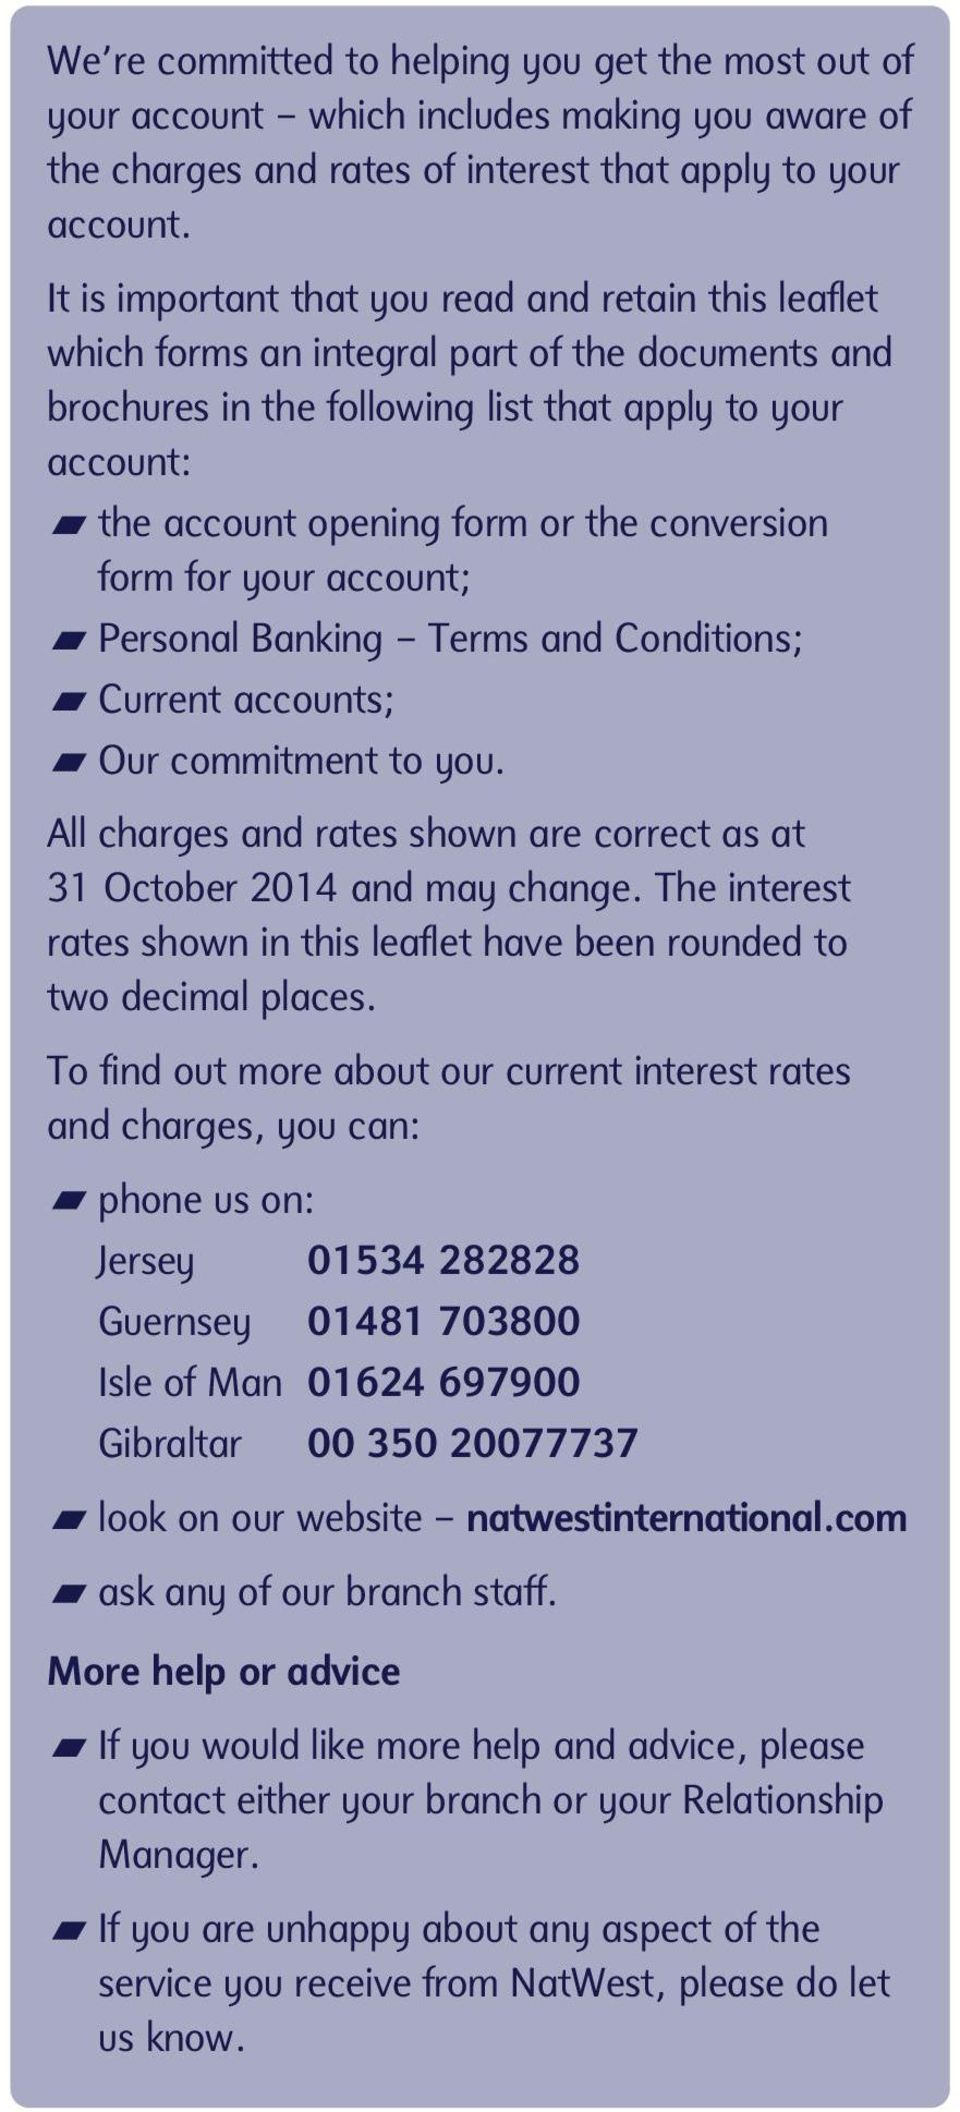 conversion form for your account; Personal Banking Terms and Conditions; Current accounts; Our commitment to you. All charges and rates shown are correct as at 31 October 2014 and may change.